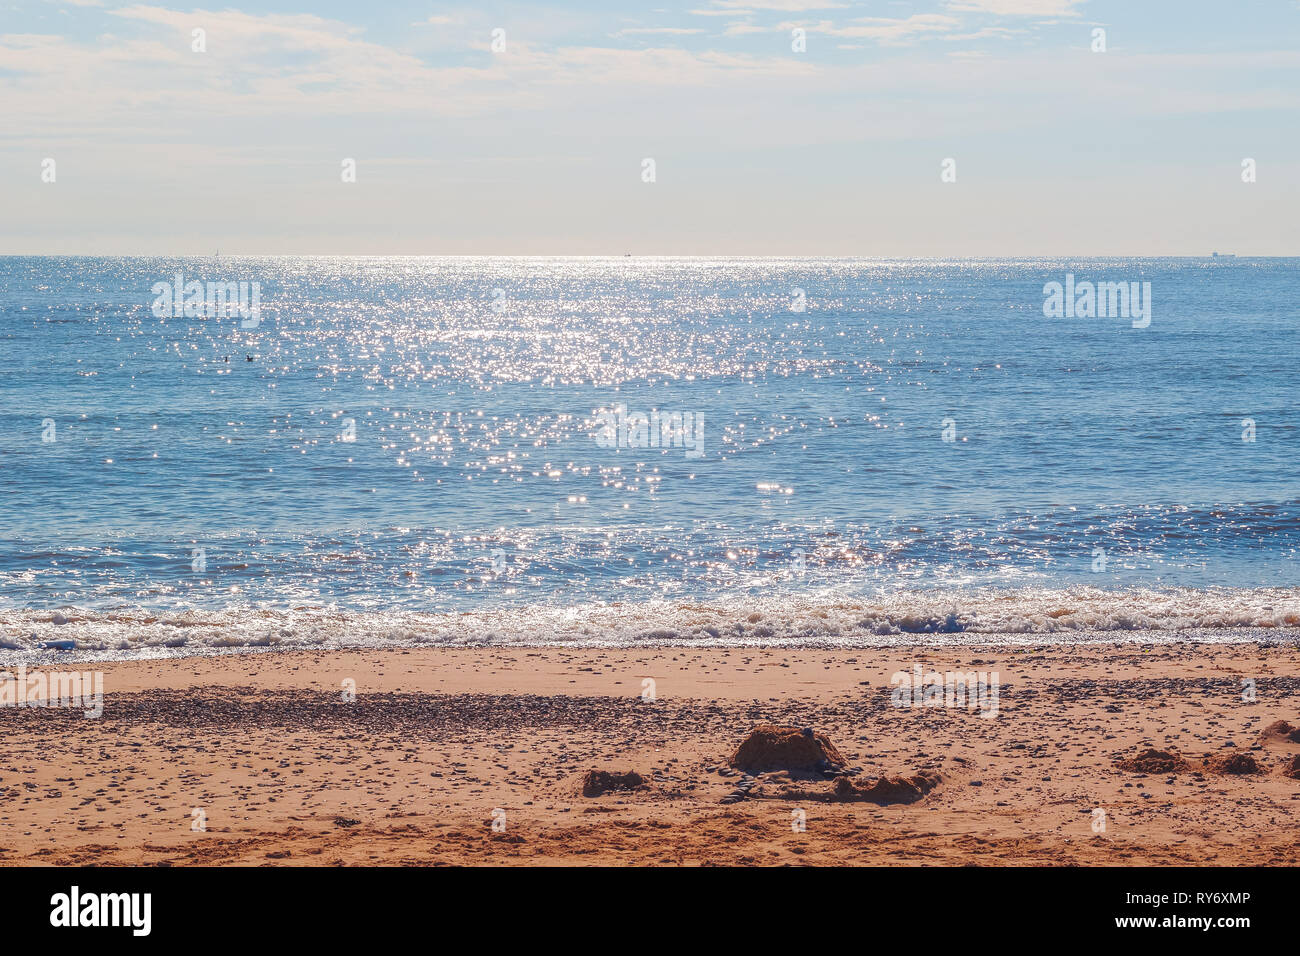 Sunlight reflecting on sparkling blue sea at Southwold beach, a popular seaside town of the UK - Stock Image